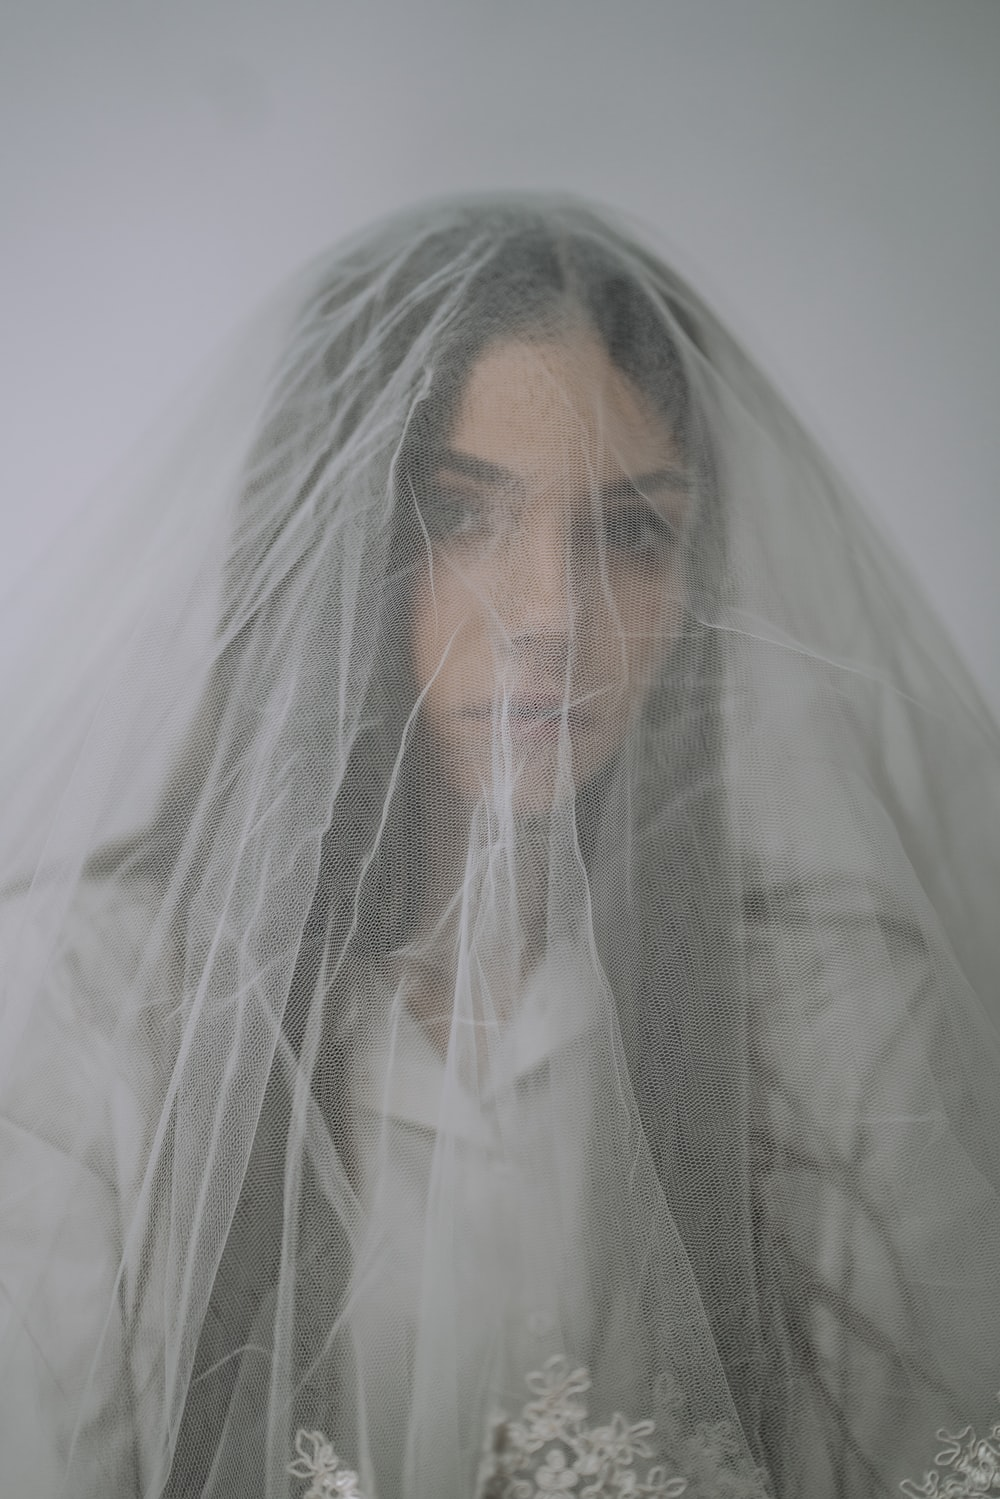 man in white veil covering his face with white textile